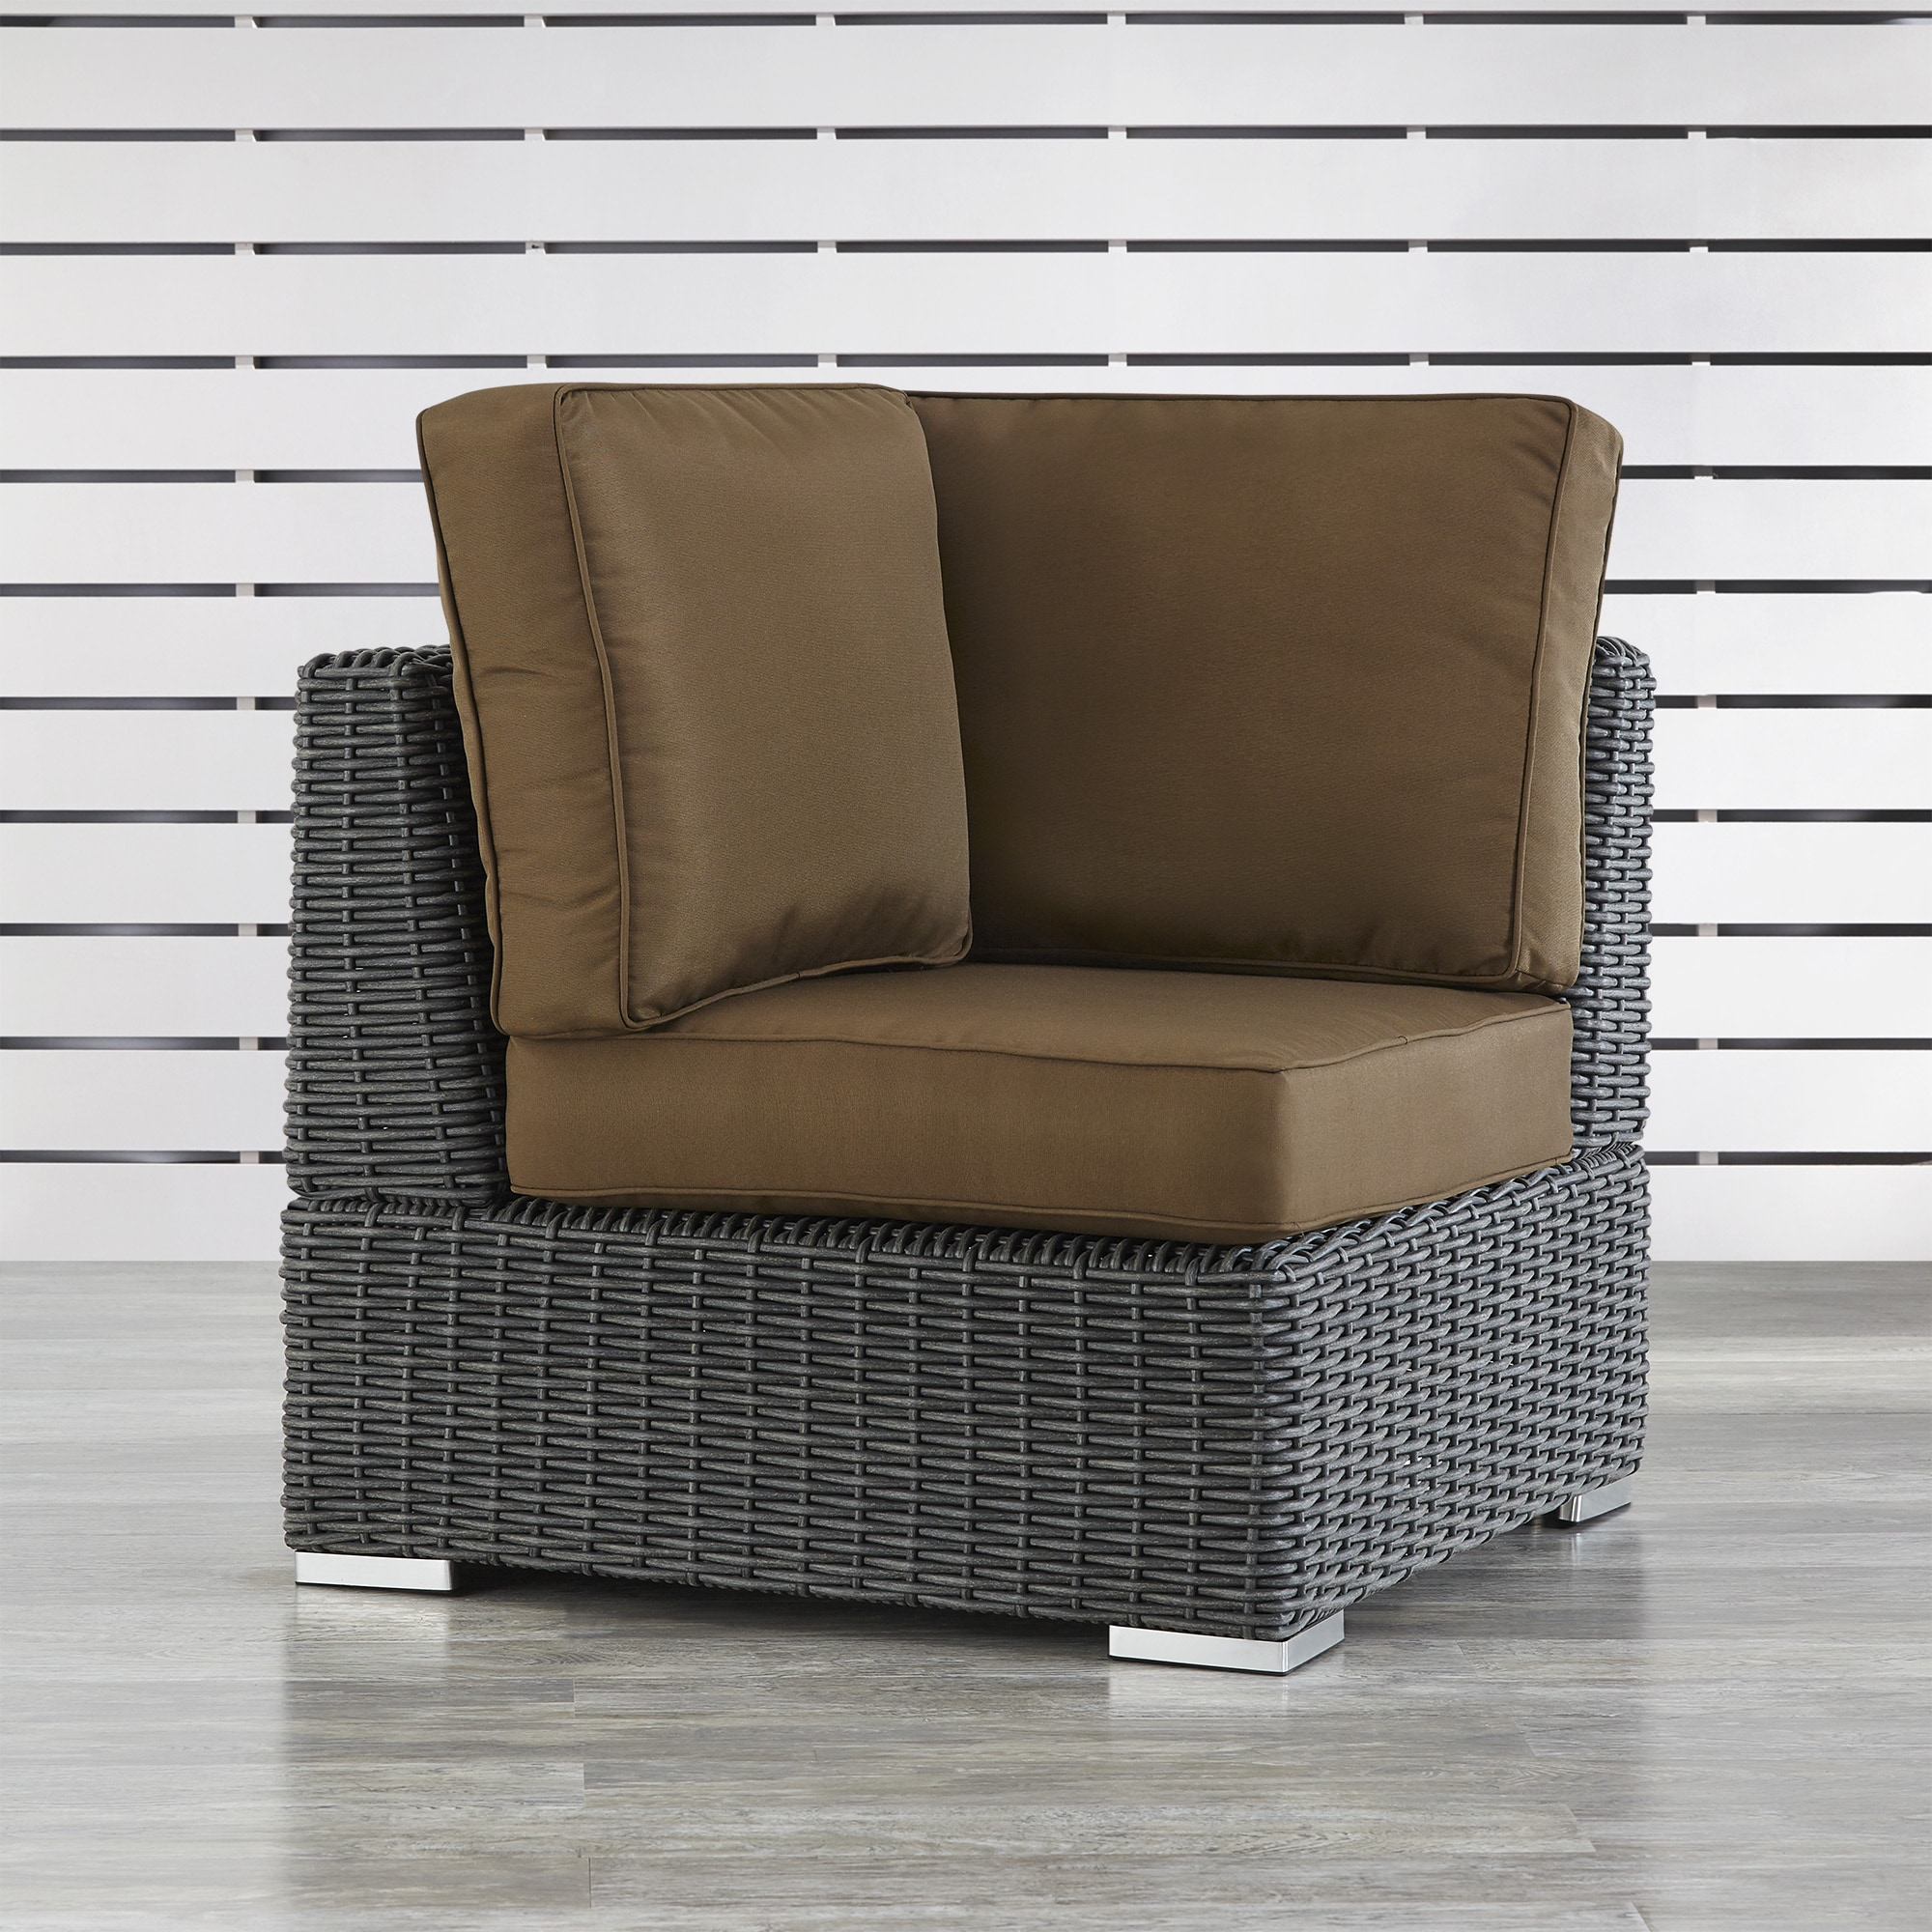 Barbados Wicker Outdoor Cushioned Grey Charcoal Sectional Corner Chair  iNSPIRE Q Oasis - Free Shipping Today - Overstock.com - 19490218